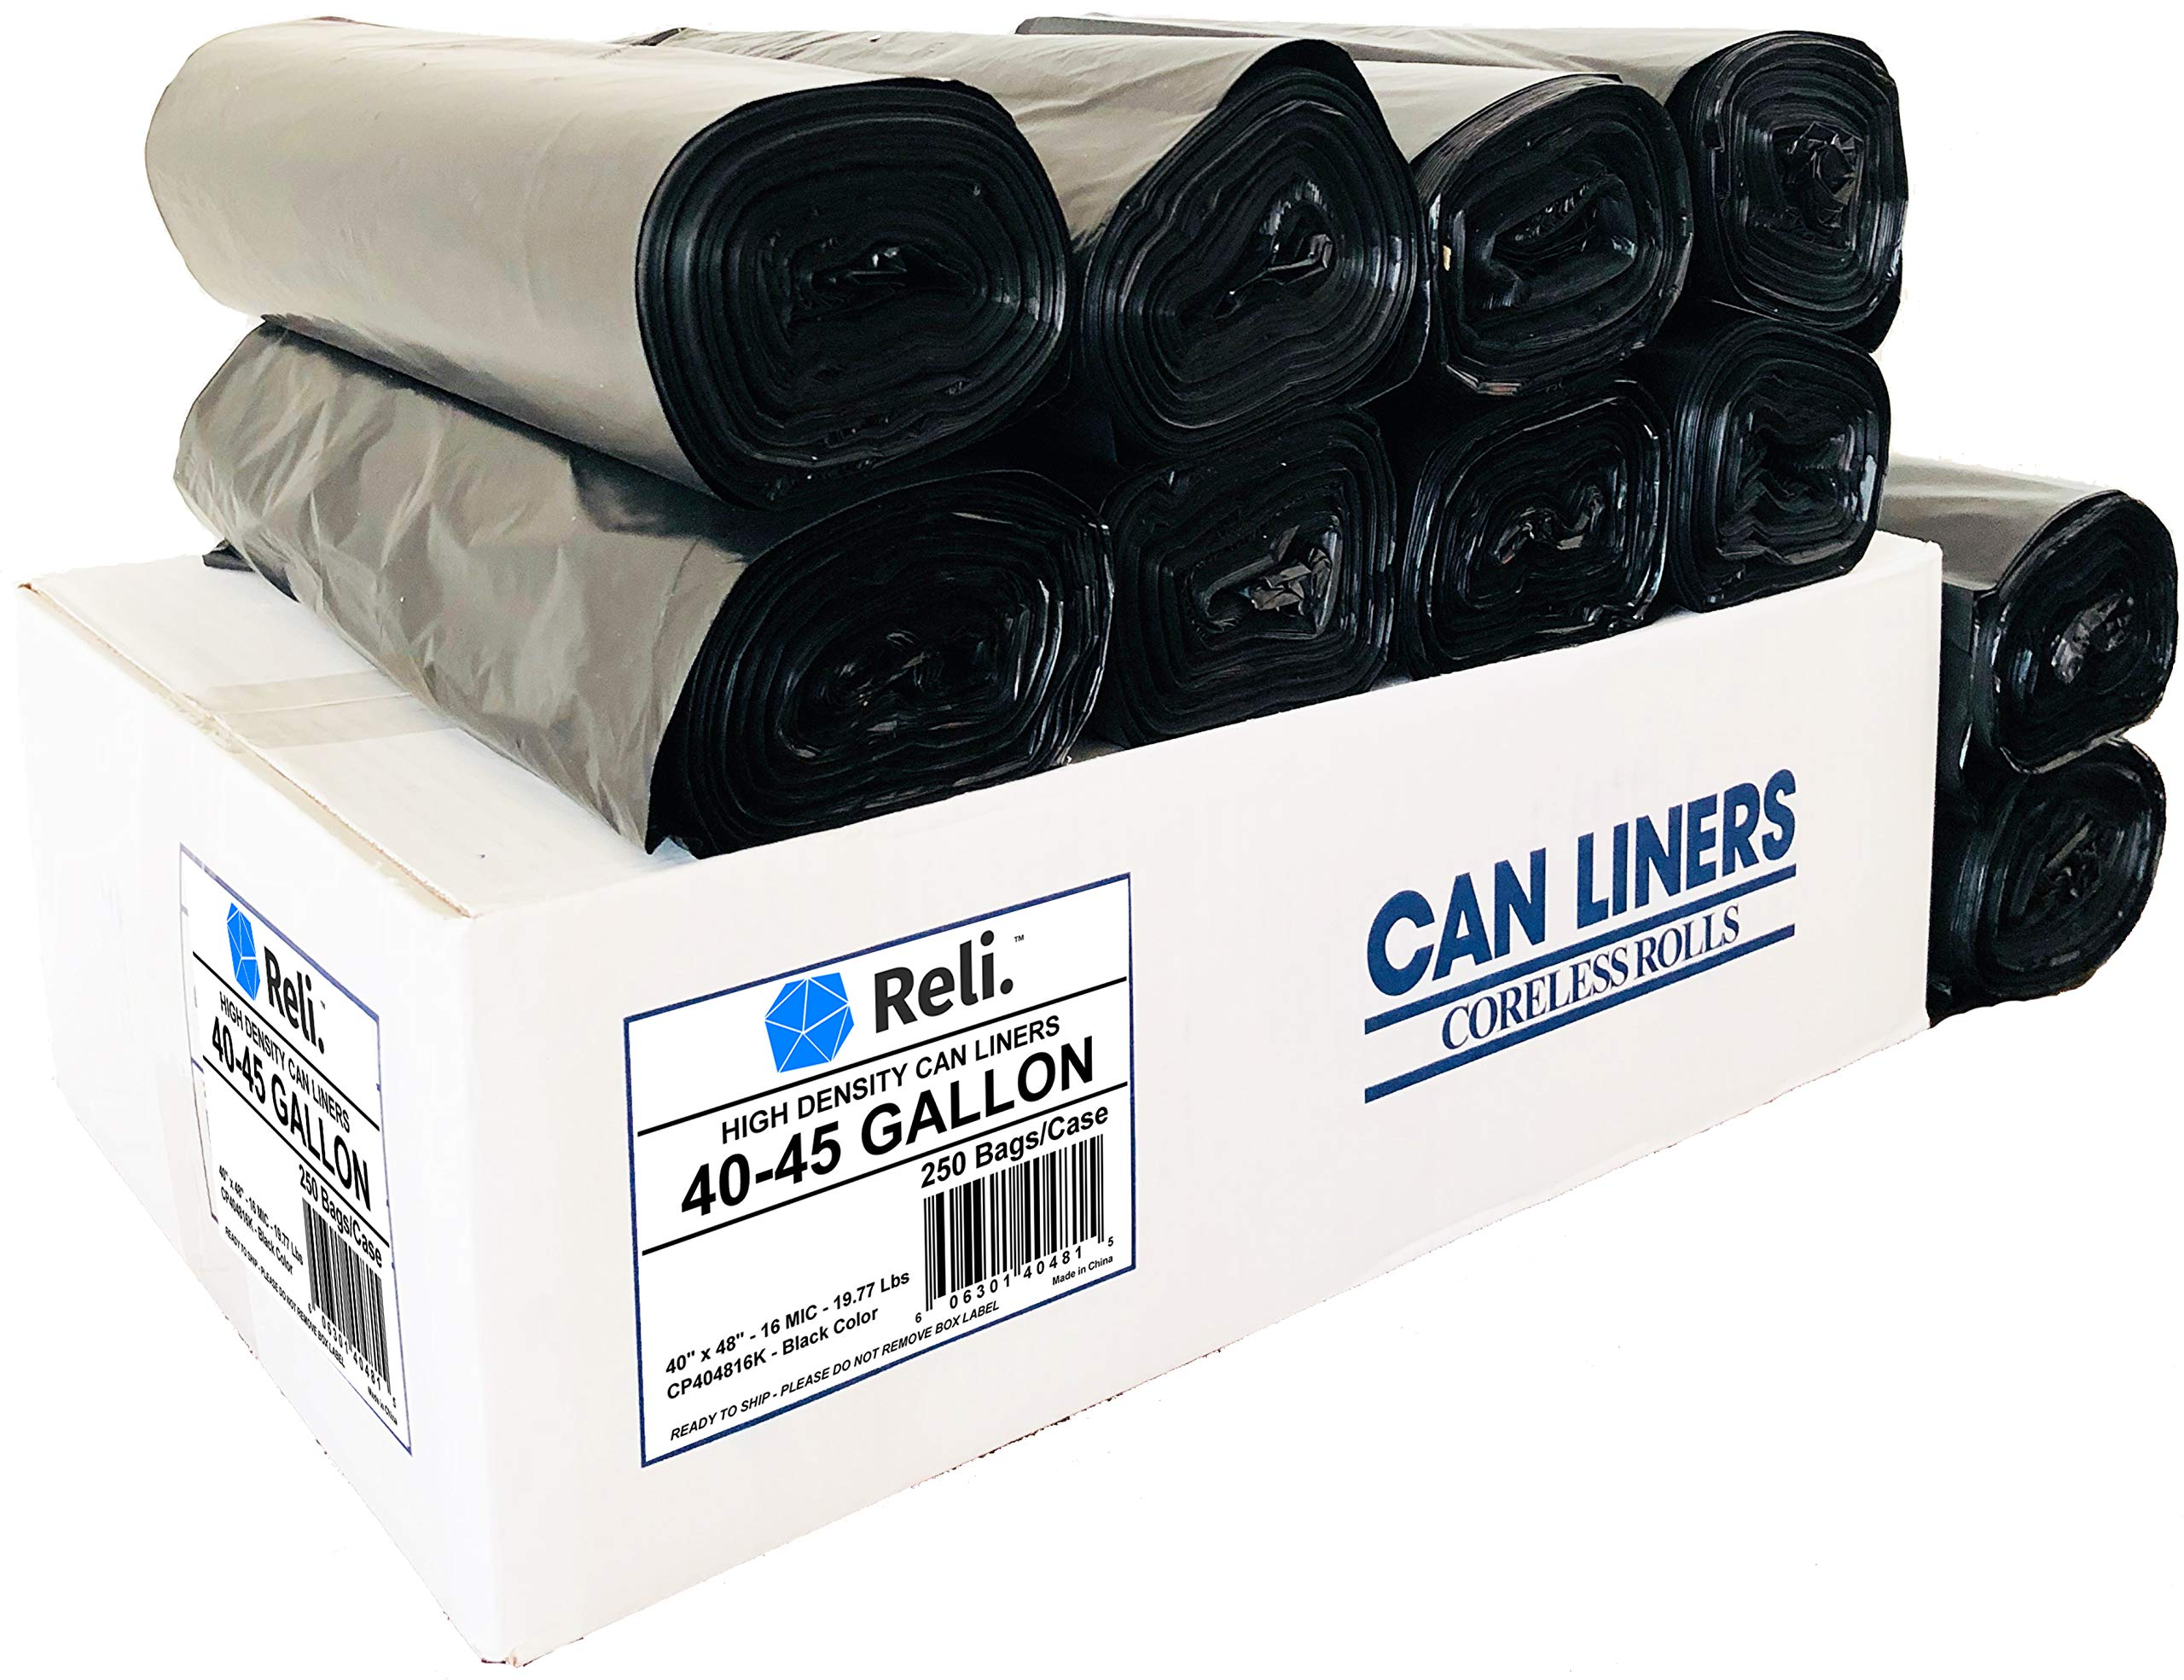 Reli. Trash Bags, 40-45 Gallon (250 Count Wholesale) - Star Seal High Density Rolls (Black) - Can Liners, Garbage Bags with 40 Gallon (40 Gal) to 45 Gallon (45 Gal) Capacity by Reli.